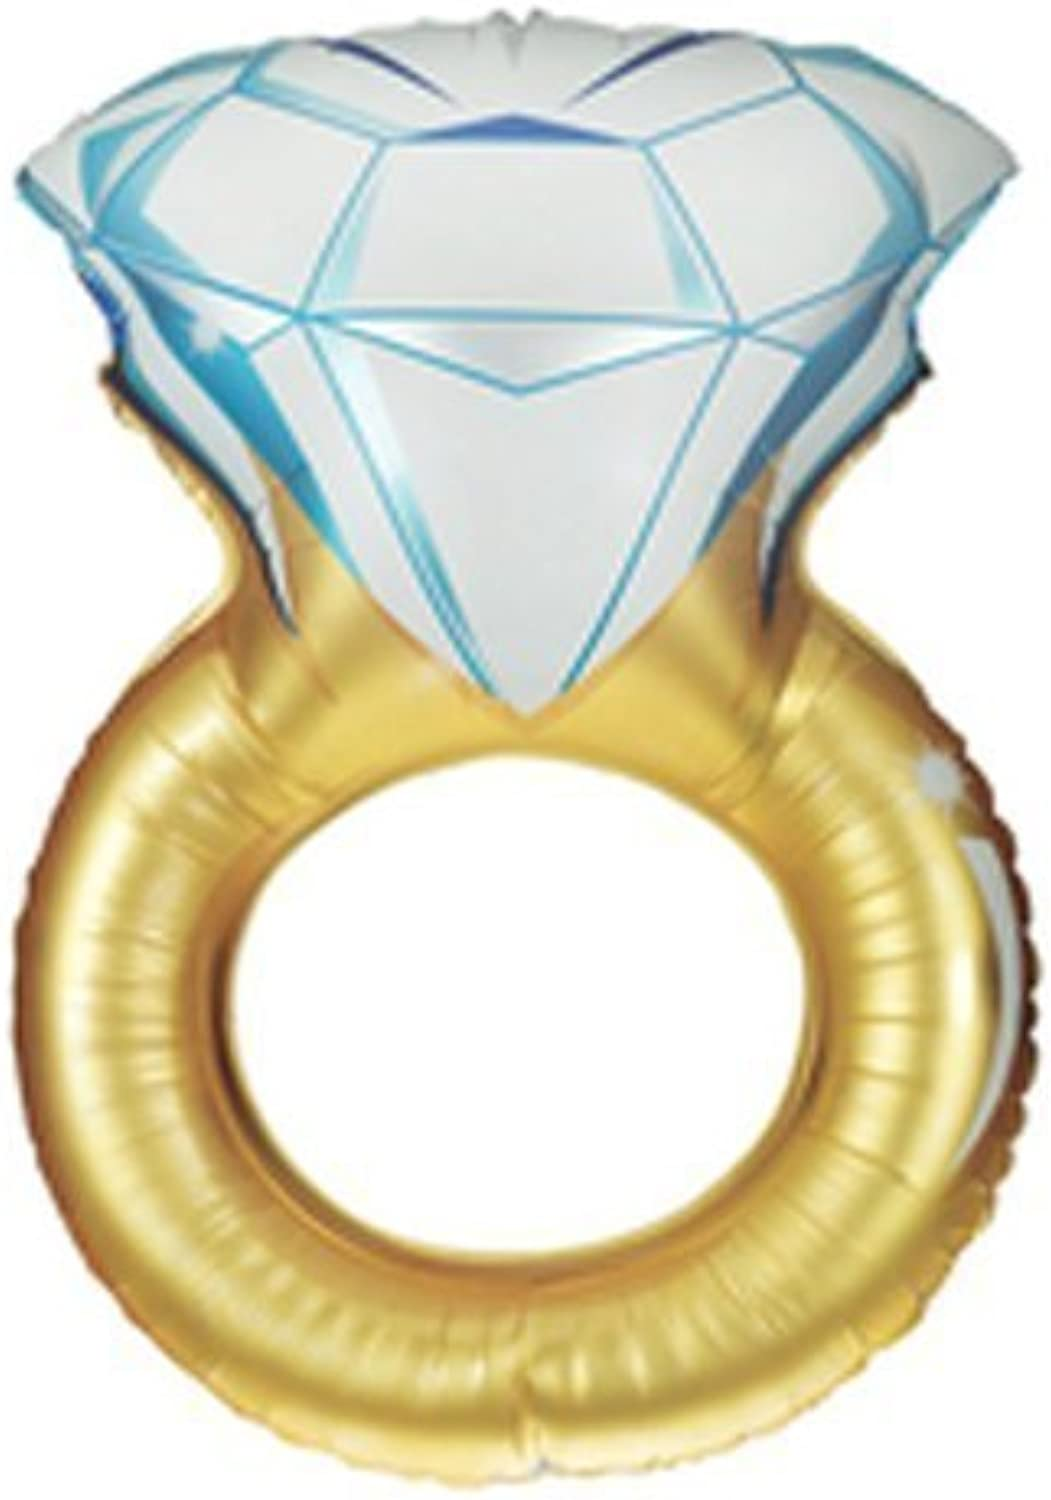 Single Source Party Supplies  37 Wedding Ring Shape Mylar Foil Balloon by Single Source Party Supplies